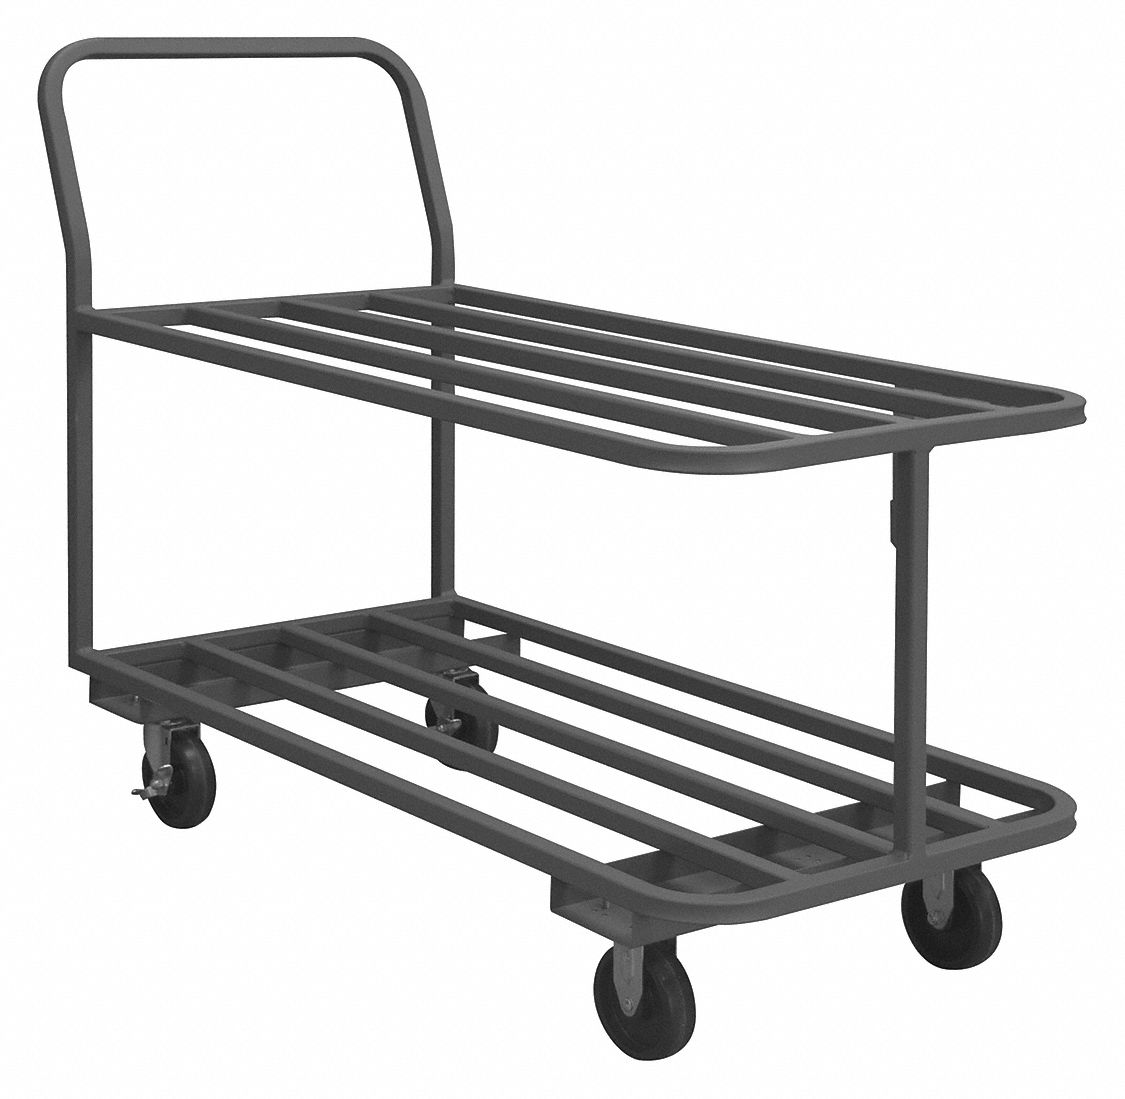 ergonomic chair grainger covers and bows ltd approved steel raised handle utility cart 1400